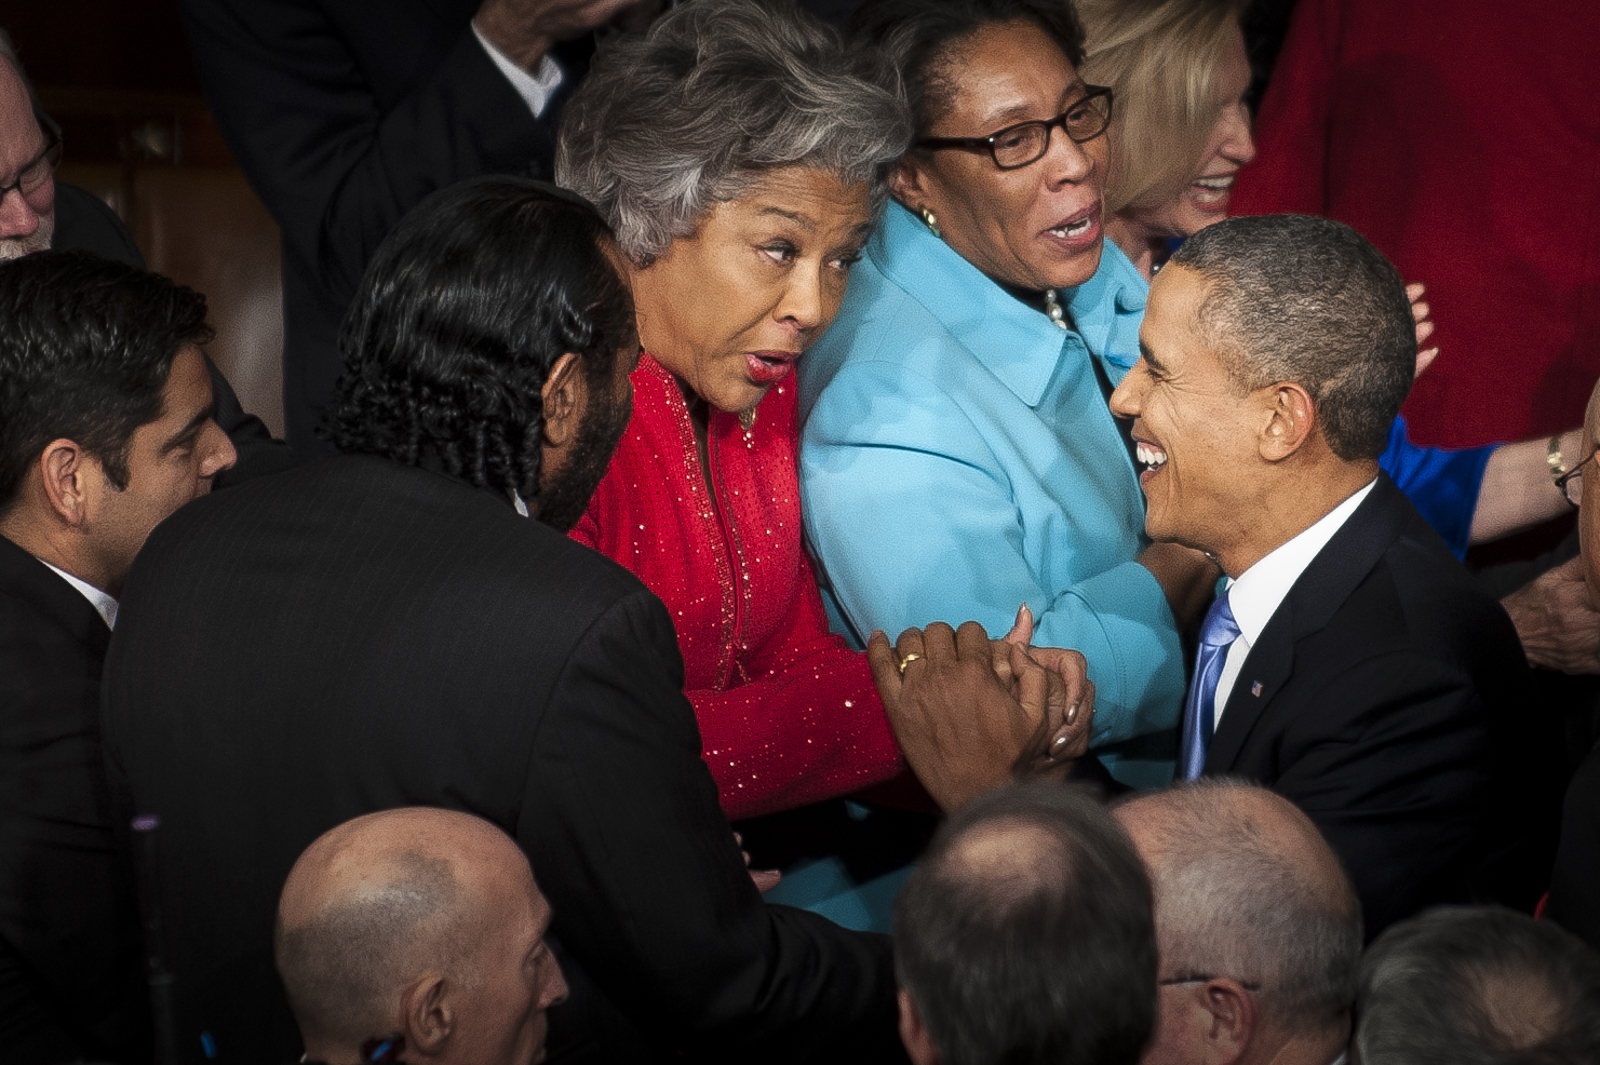 U.S. President Barack Obama is greeted by Rep. Joyce Beatty (D-OH) as he arrives in the House Chamber to deliver the State of the Union address to a joint session of Congress at the Capitol in Washington, D.C., U.S., on Tuesday, Jan. 28, 2014. Photographer: Pete Marovich/Bloomberg